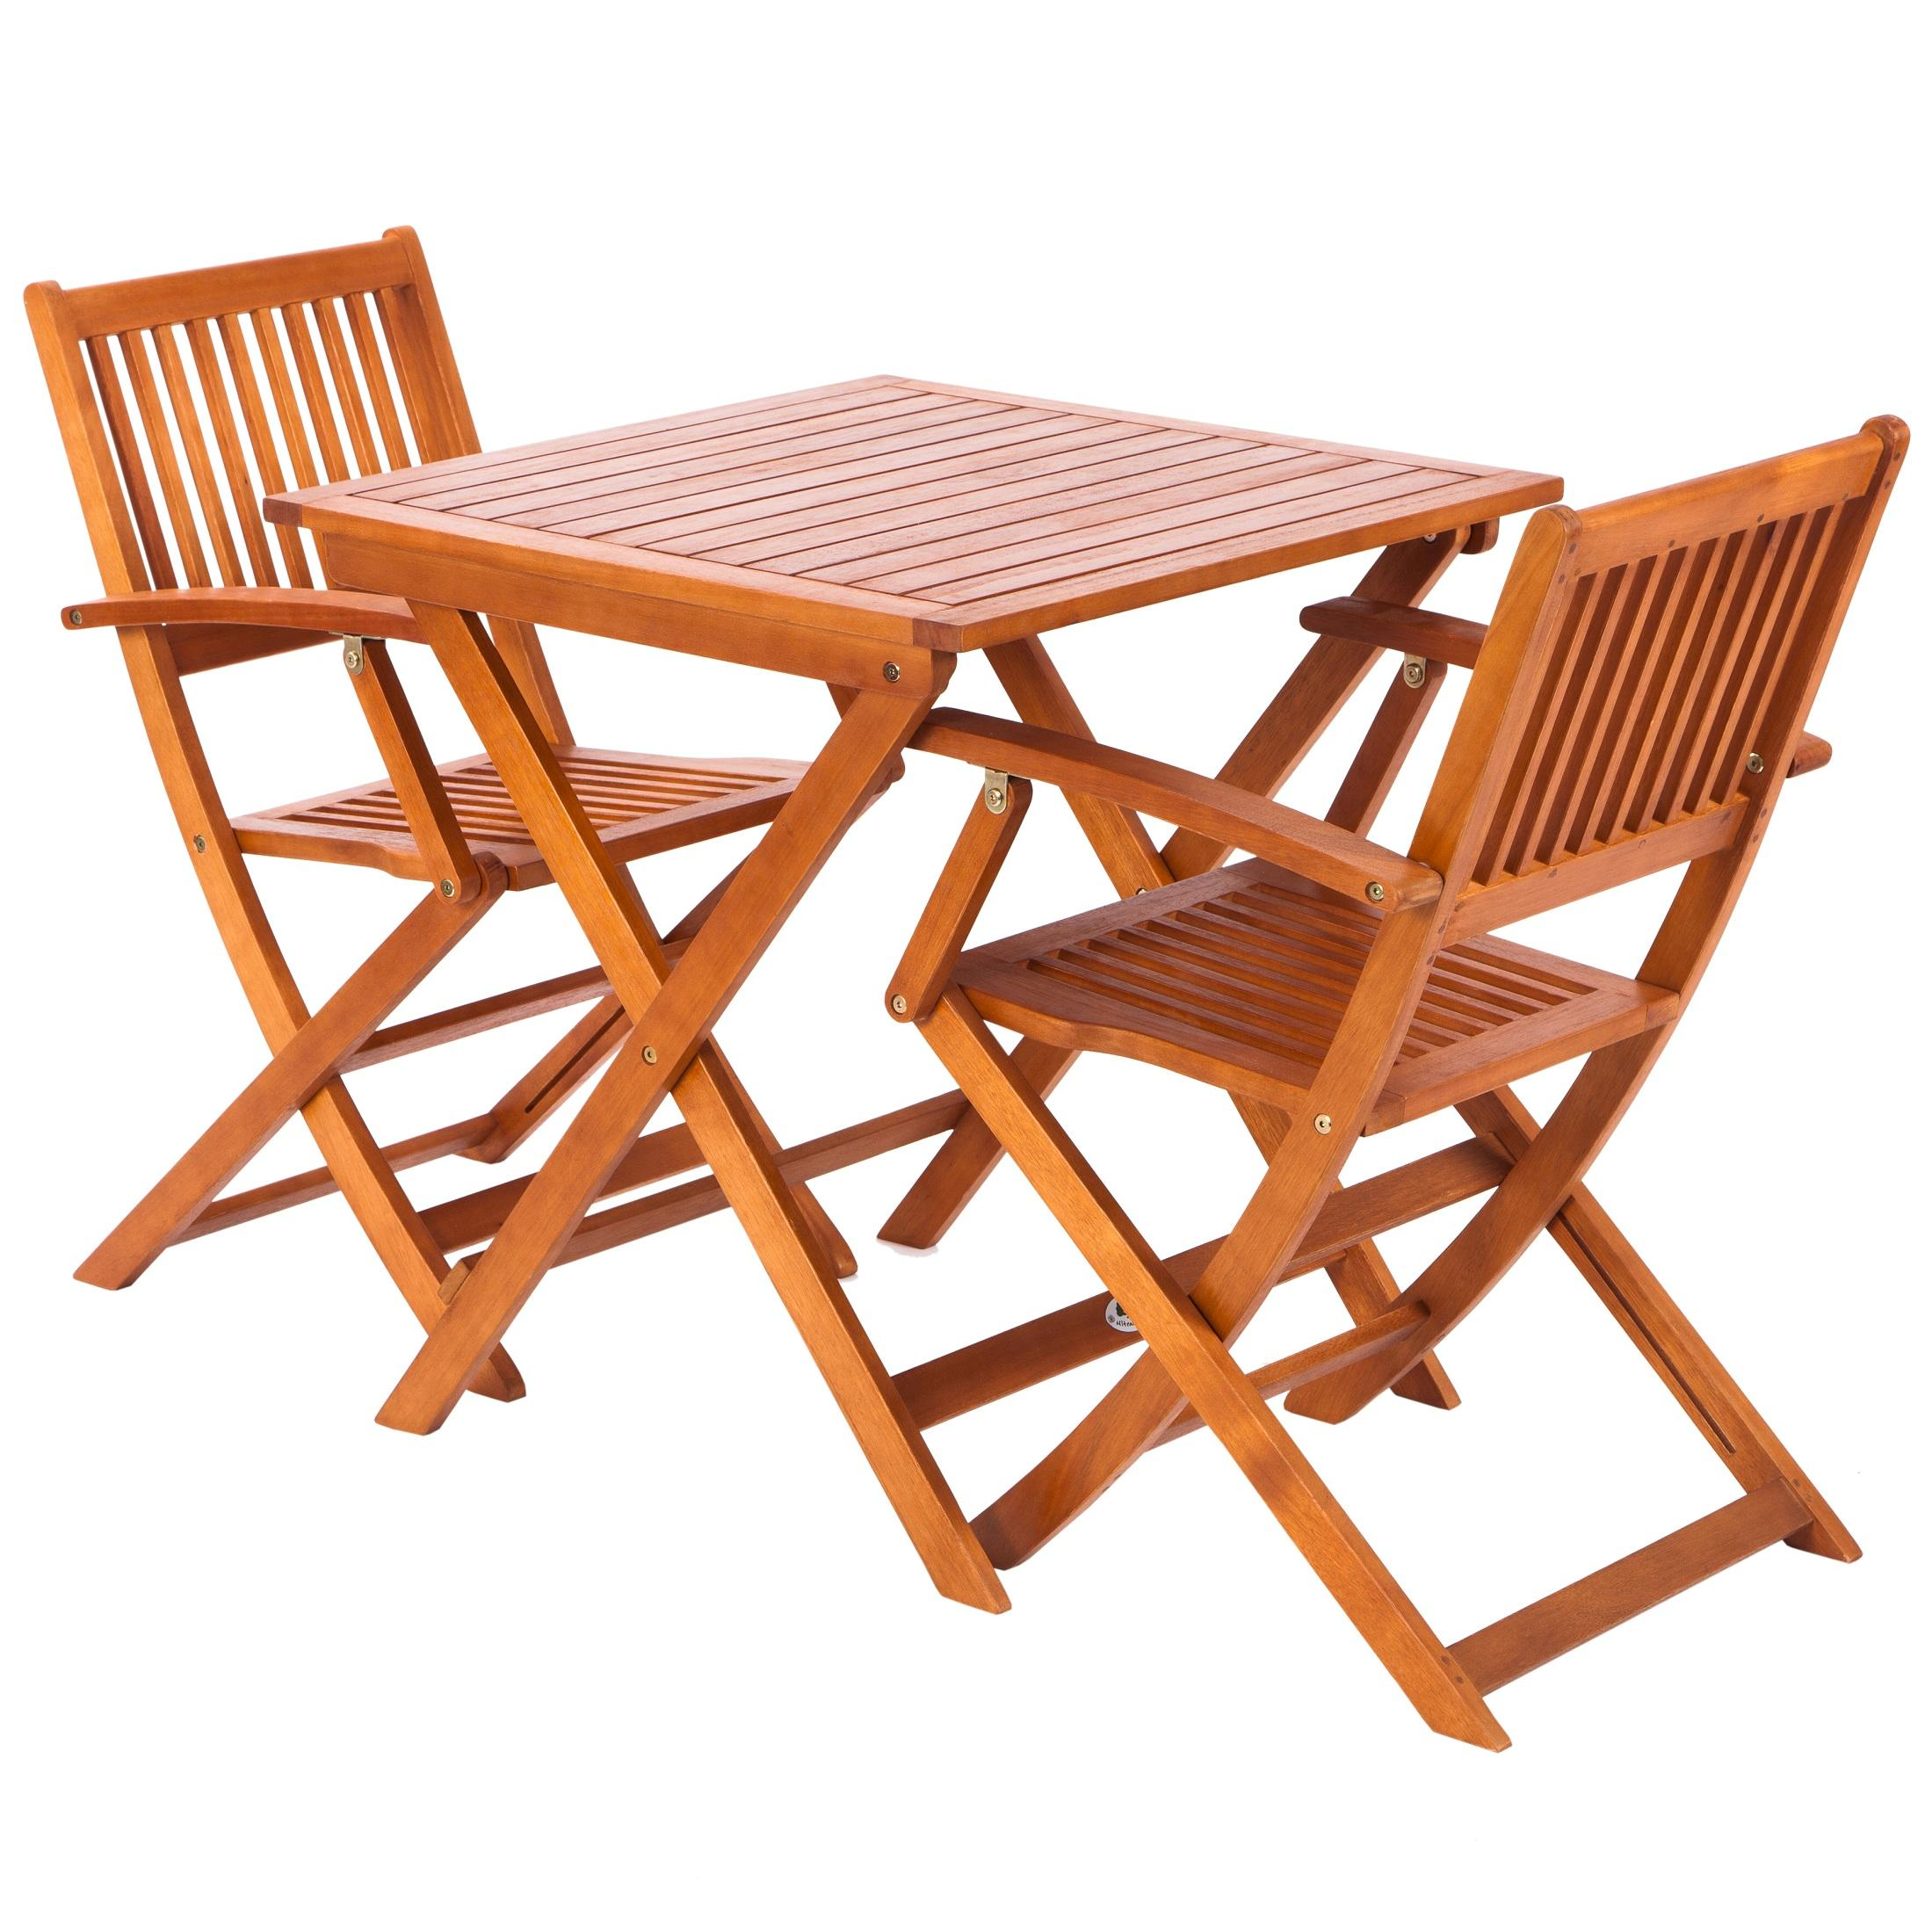 Ultranatura balcony set patio set canberra series classy for Table et chaises 6 personnes